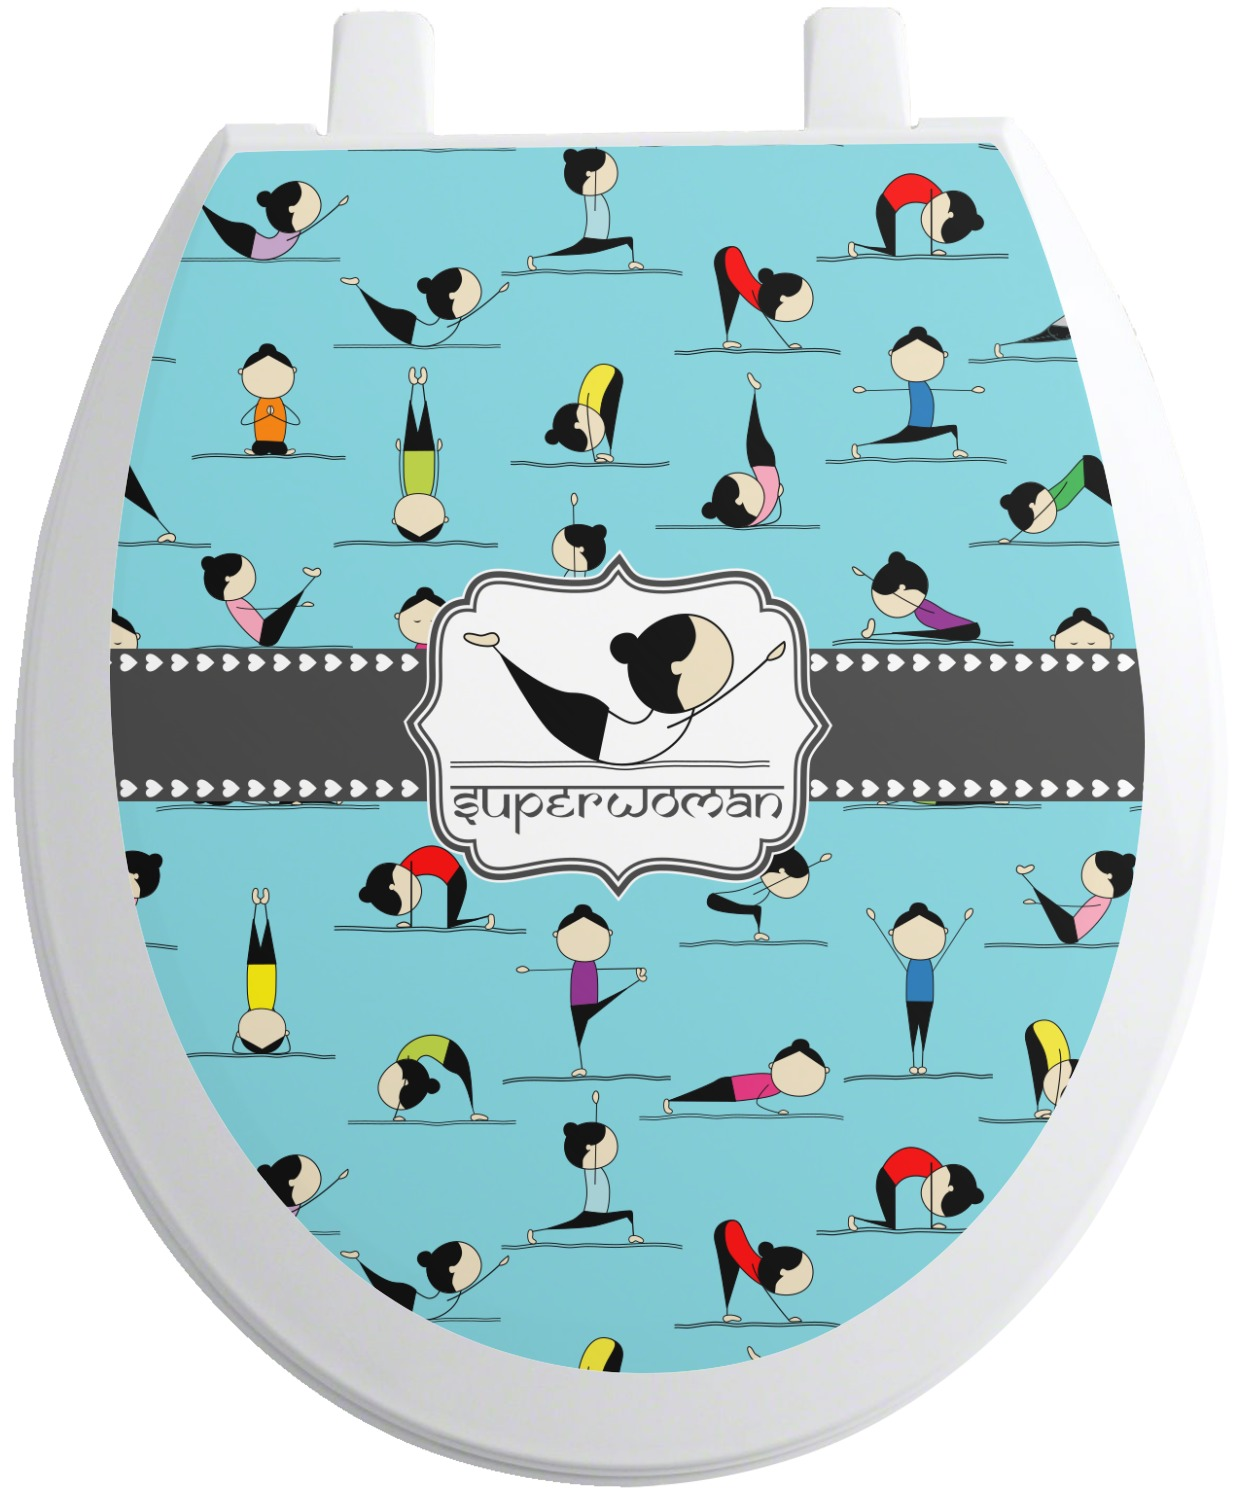 Yoga Poses Toilet Seat Decal (Personalized) - YouCustomizeIt